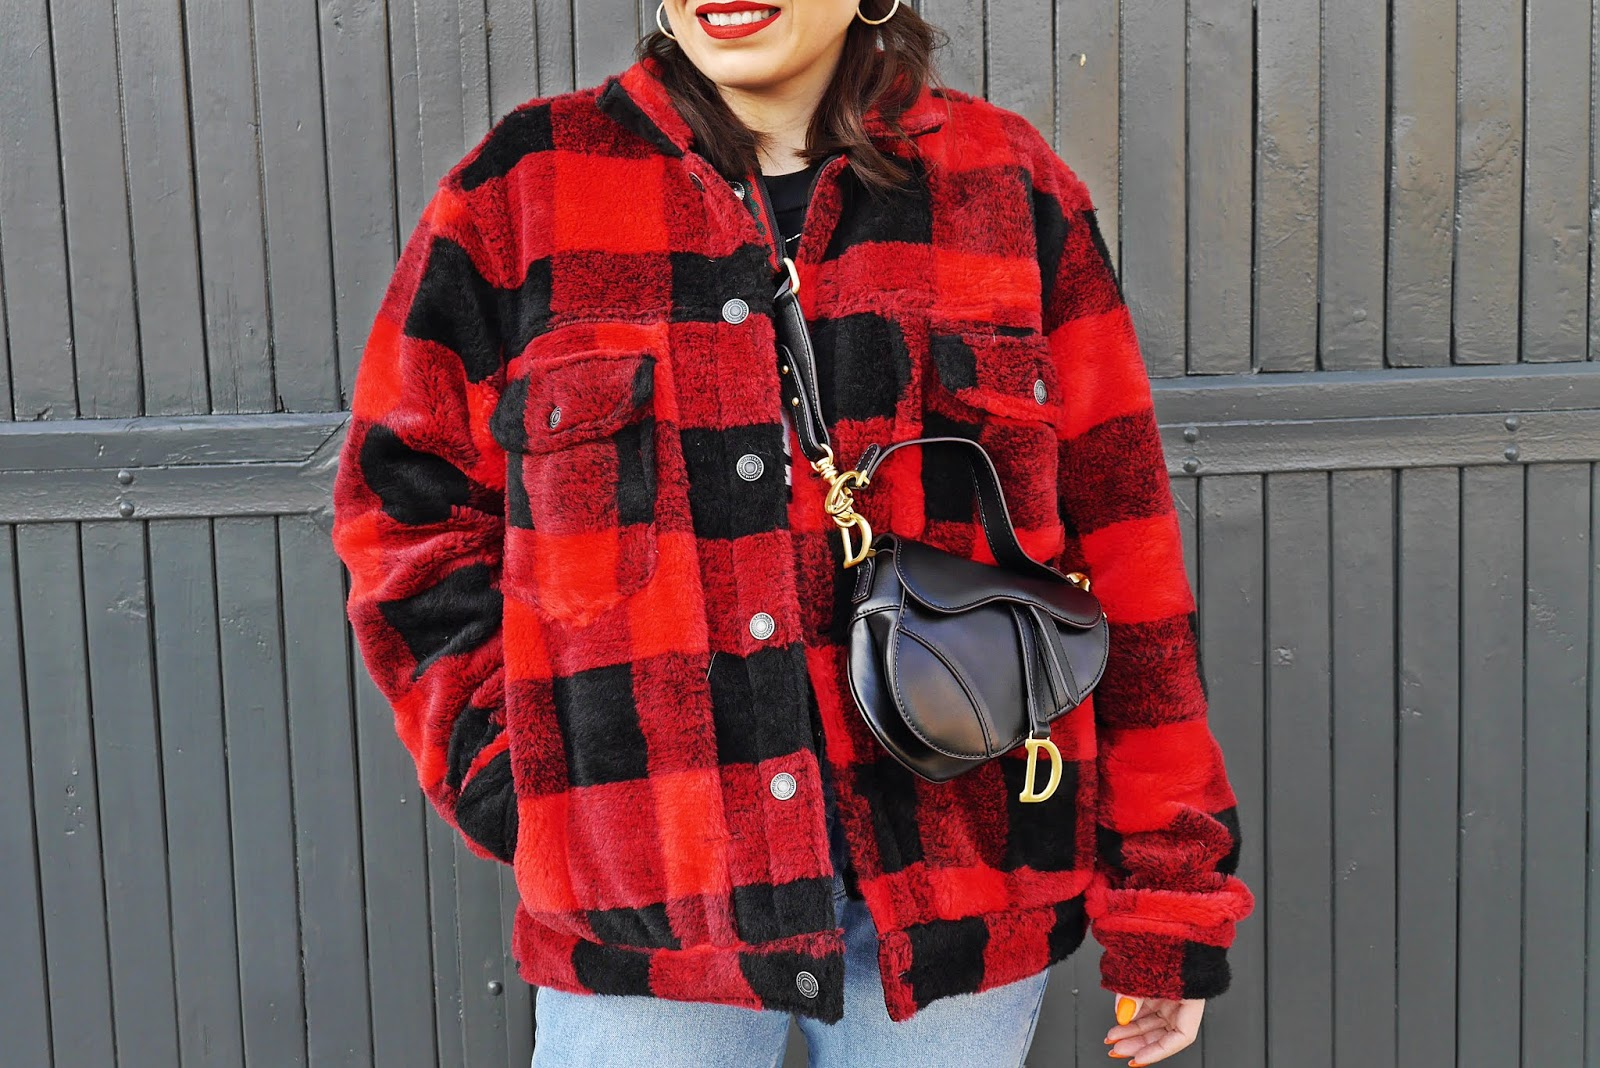 plaid red jacket fashion blogger karyn denim pants femme luxe red sunglasses gray beanie winter look outfit adidas superstar gold pulawy